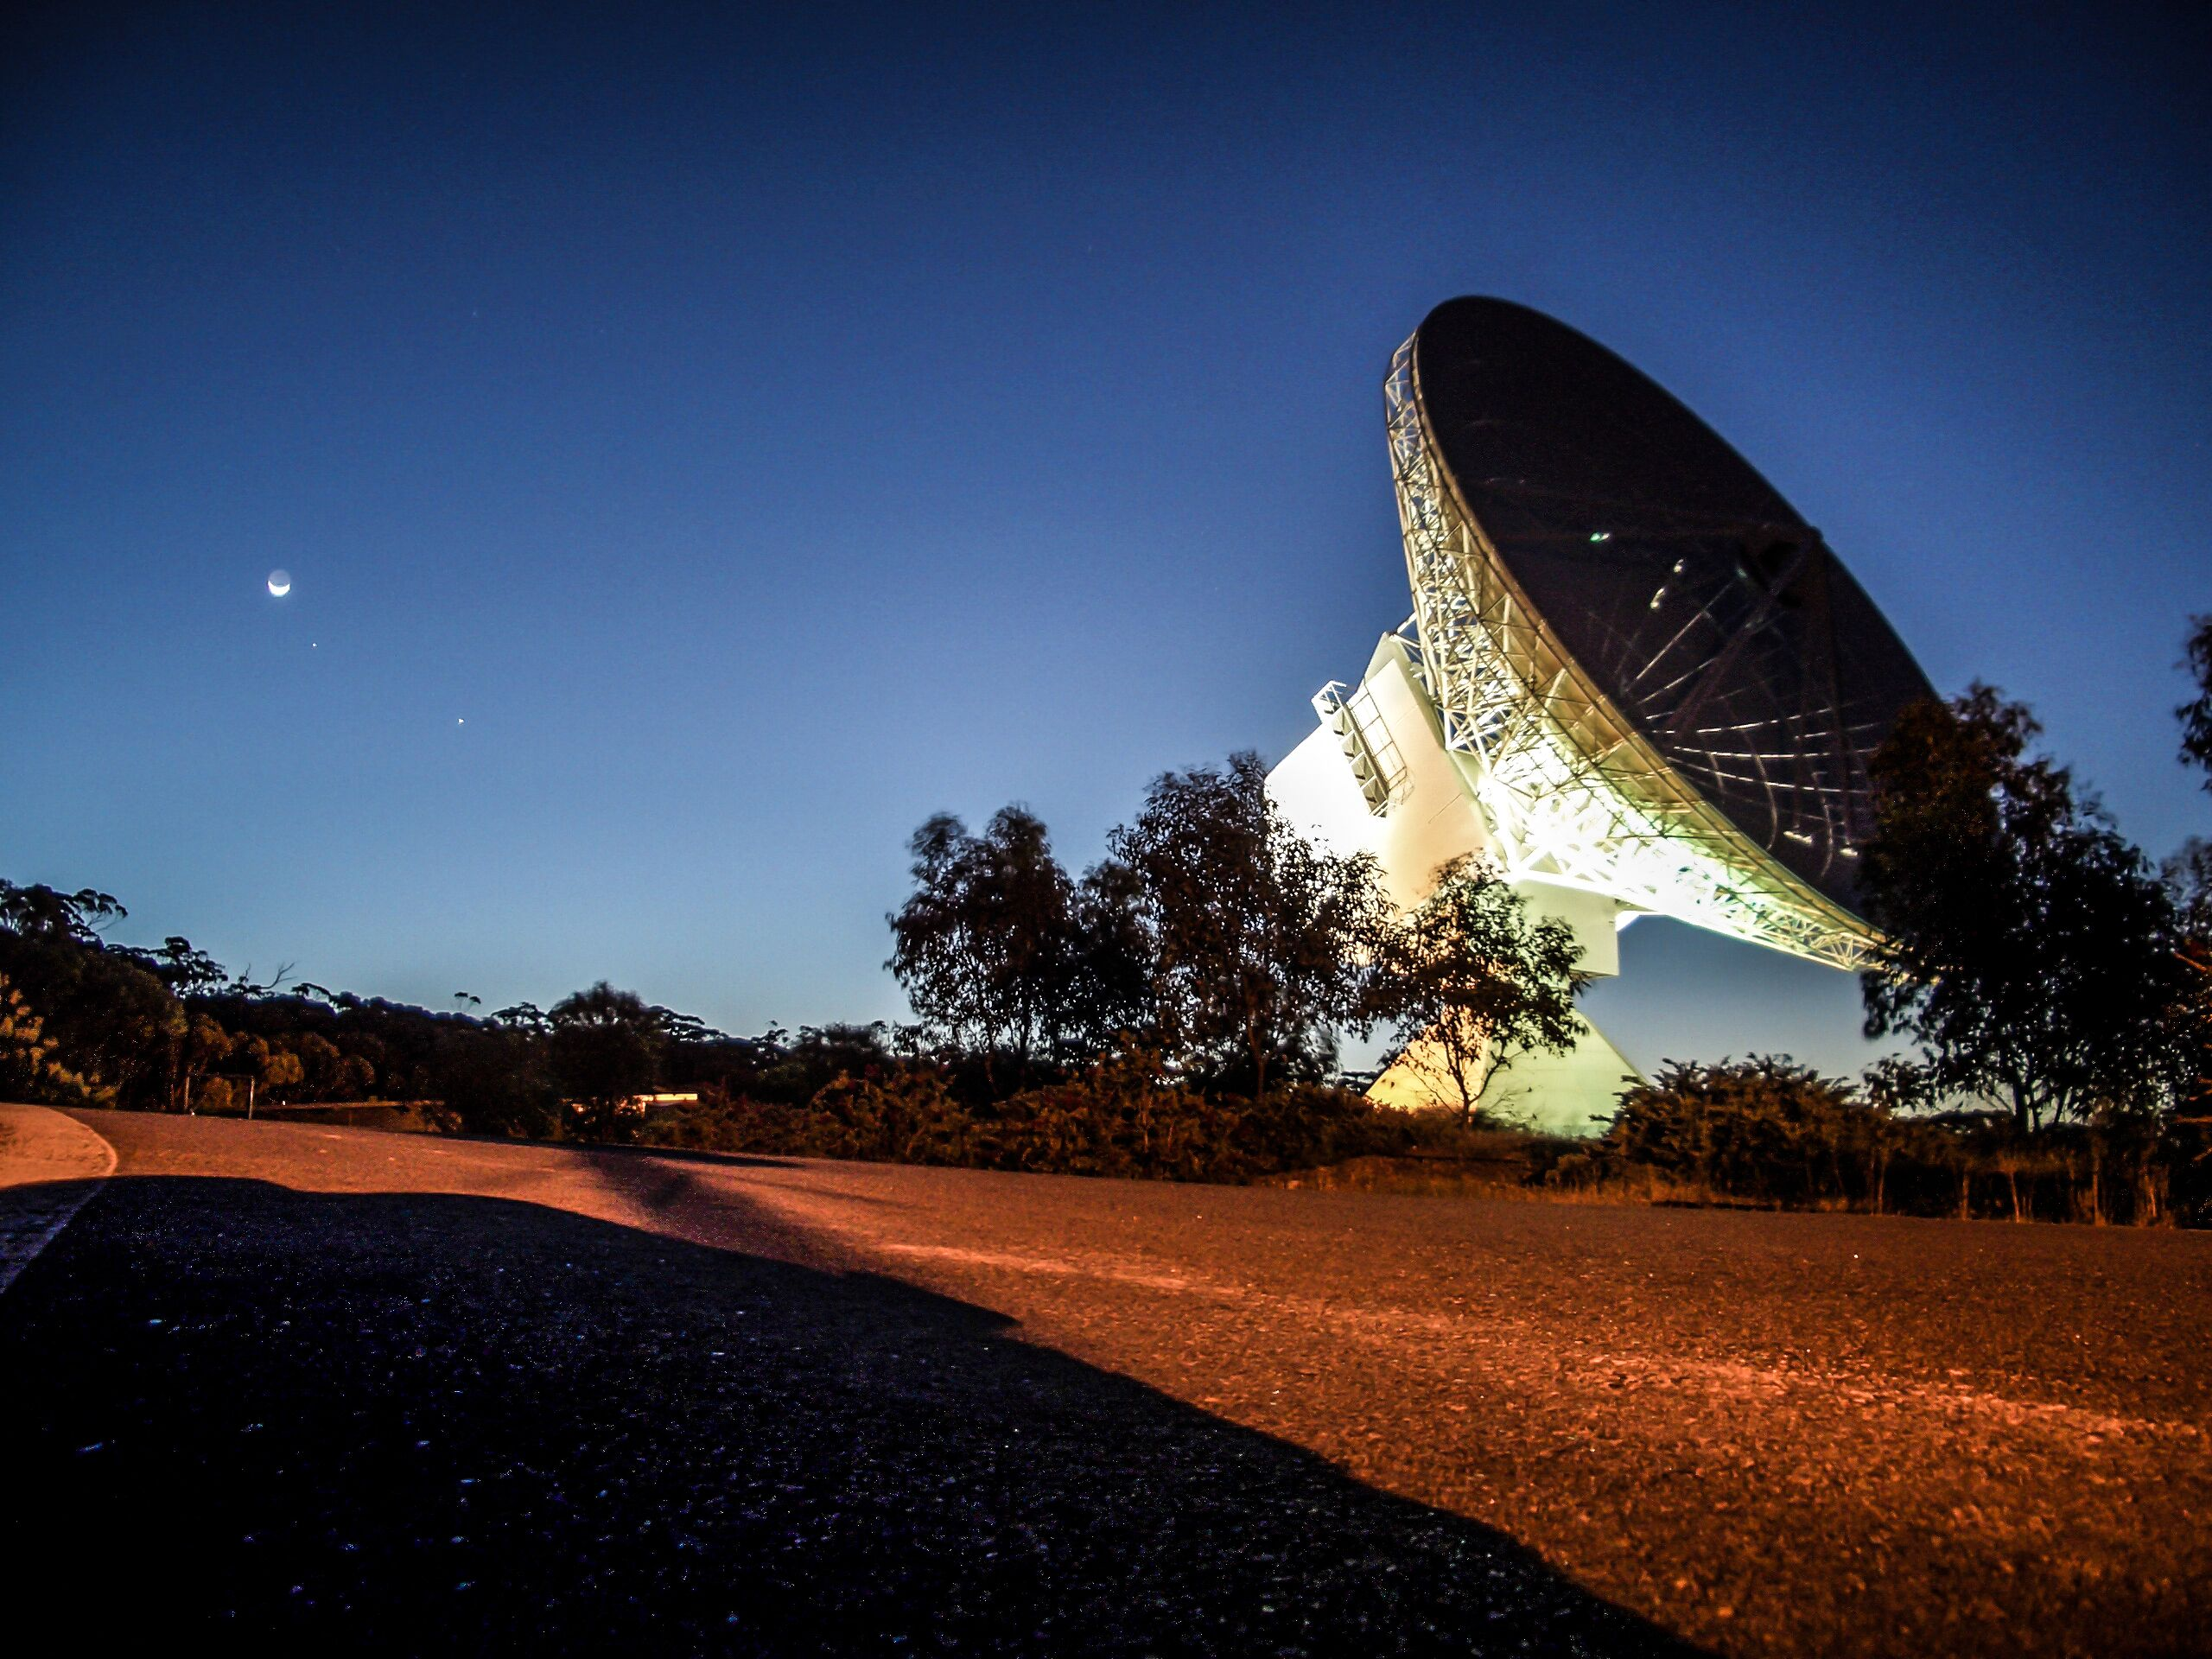 Radio telescope at night.